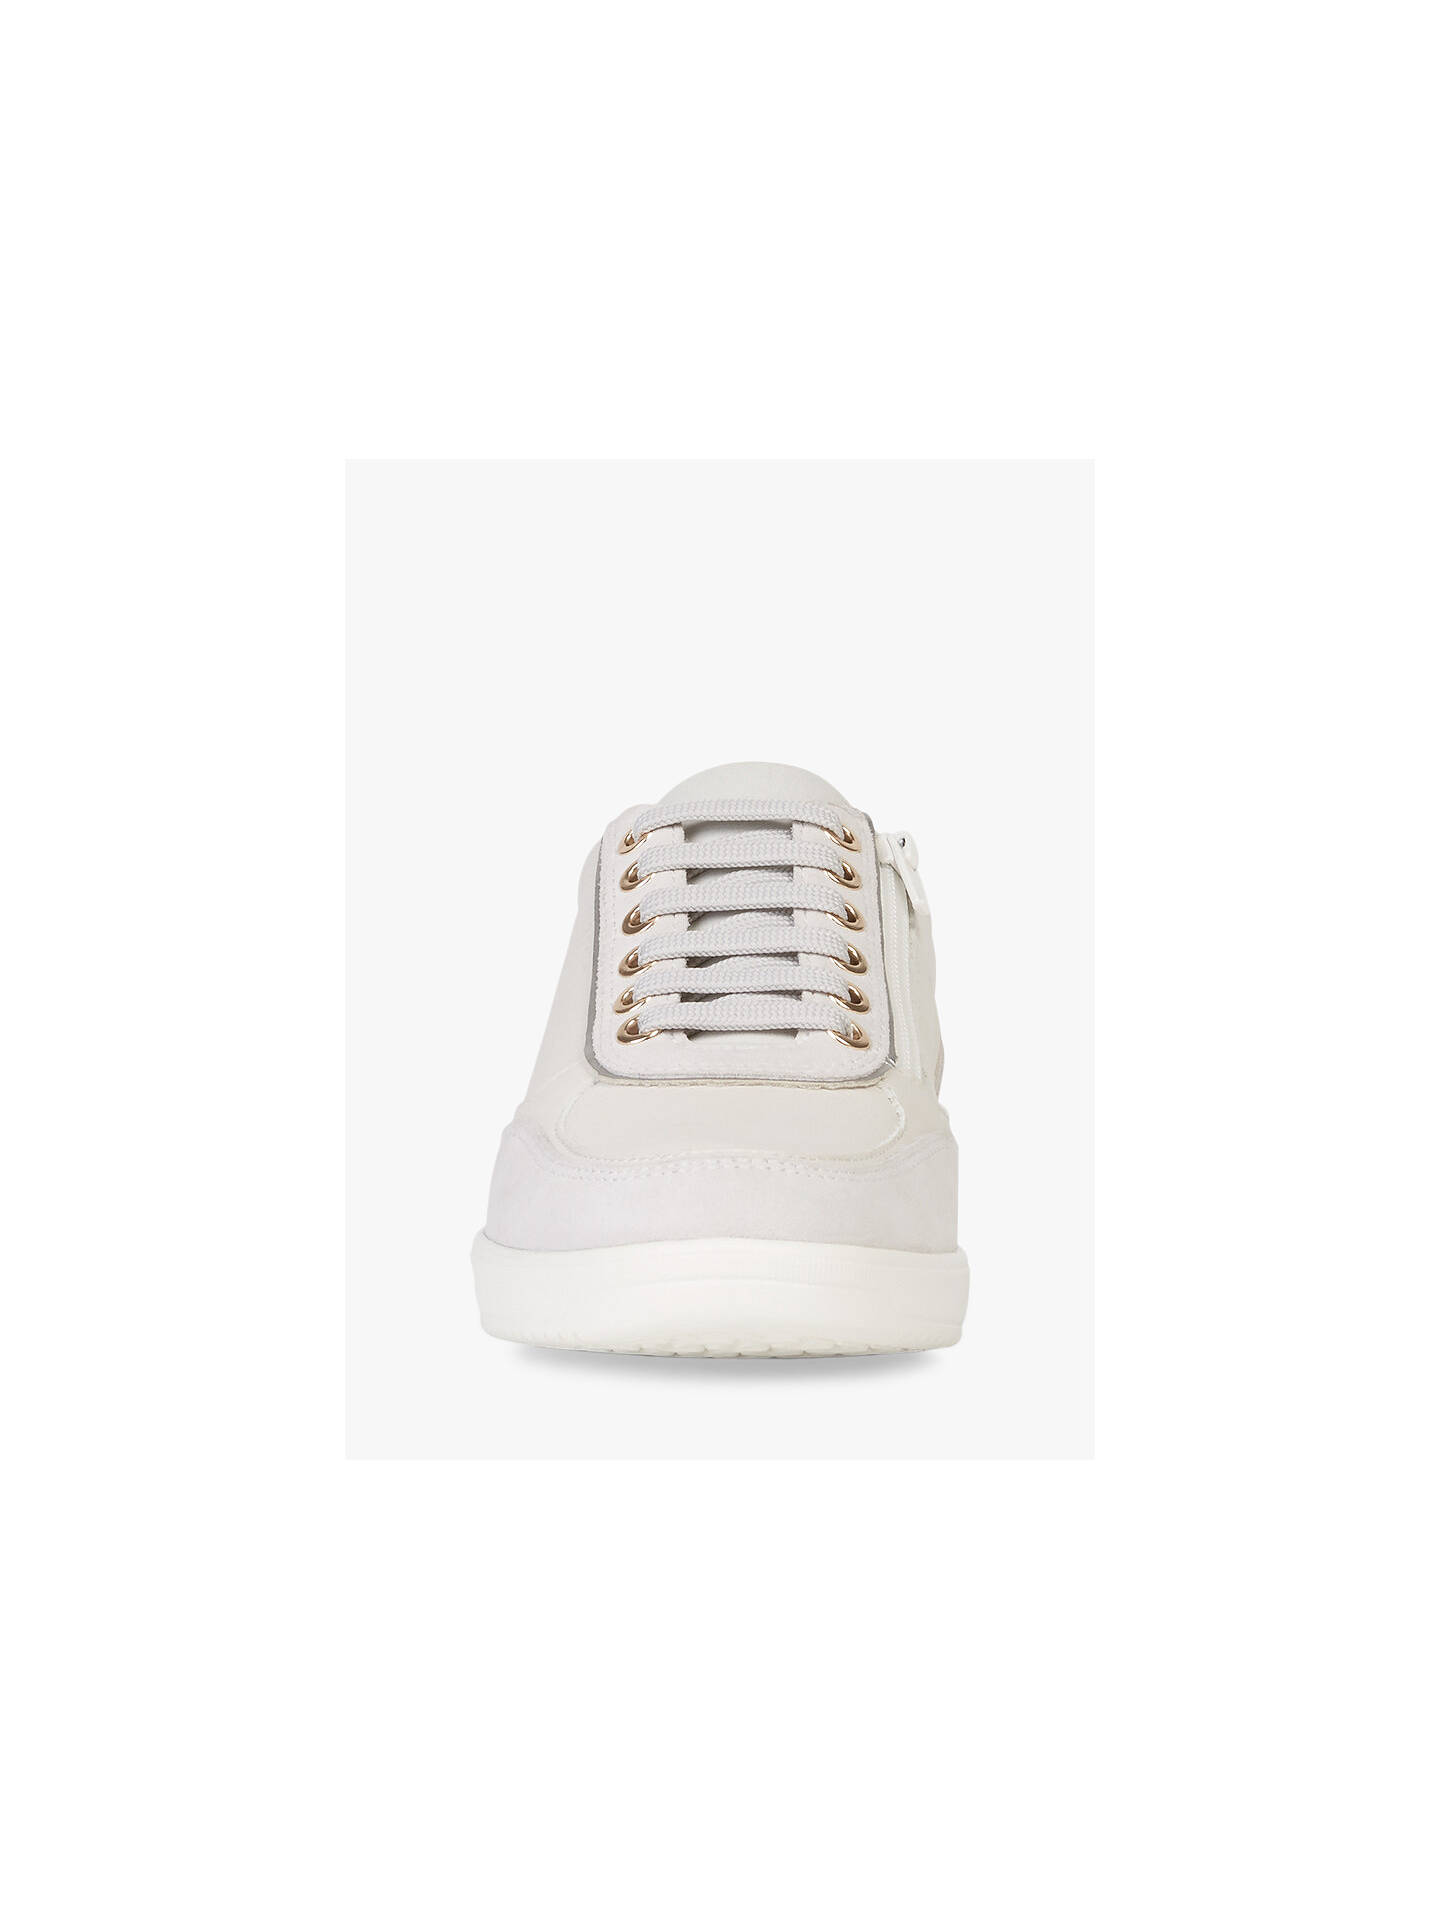 Buy Geox Women's Tahina Lace Up Trainers, White, 8 Online at johnlewis.com